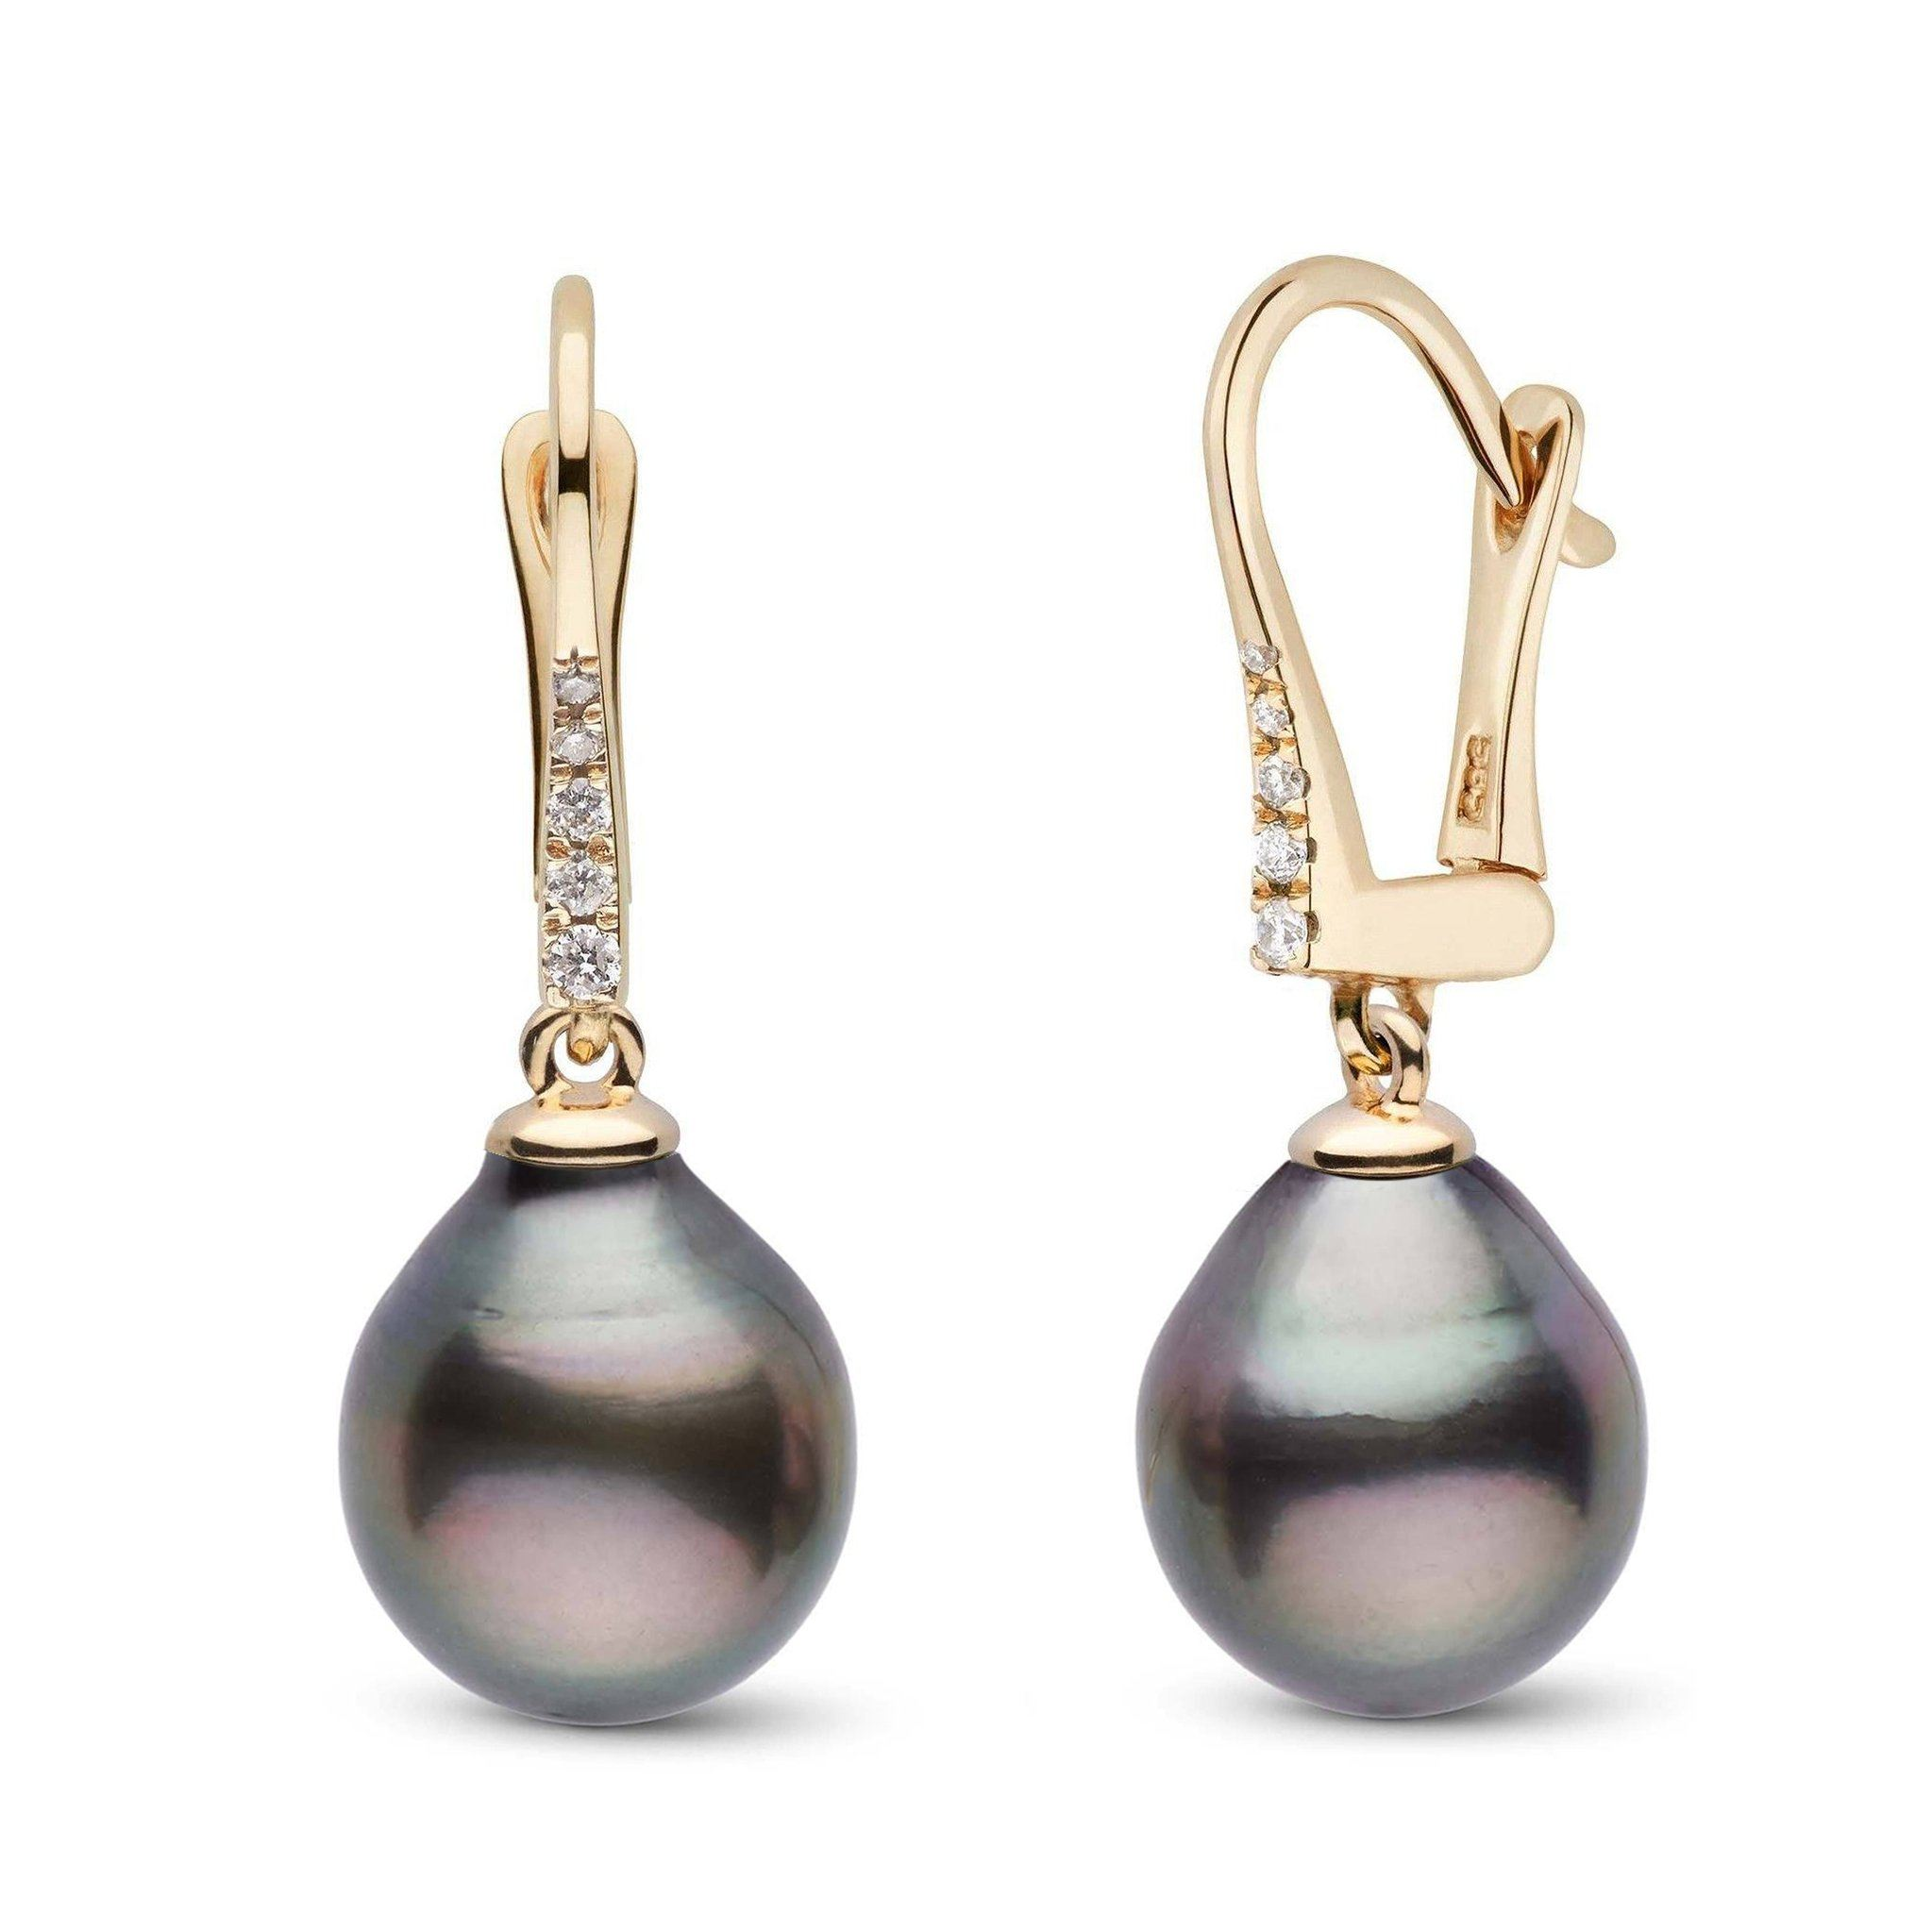 Allure Collection Tahitian Drop 11.0-12.0 mm Pearl & Diamond Dangle Earrings